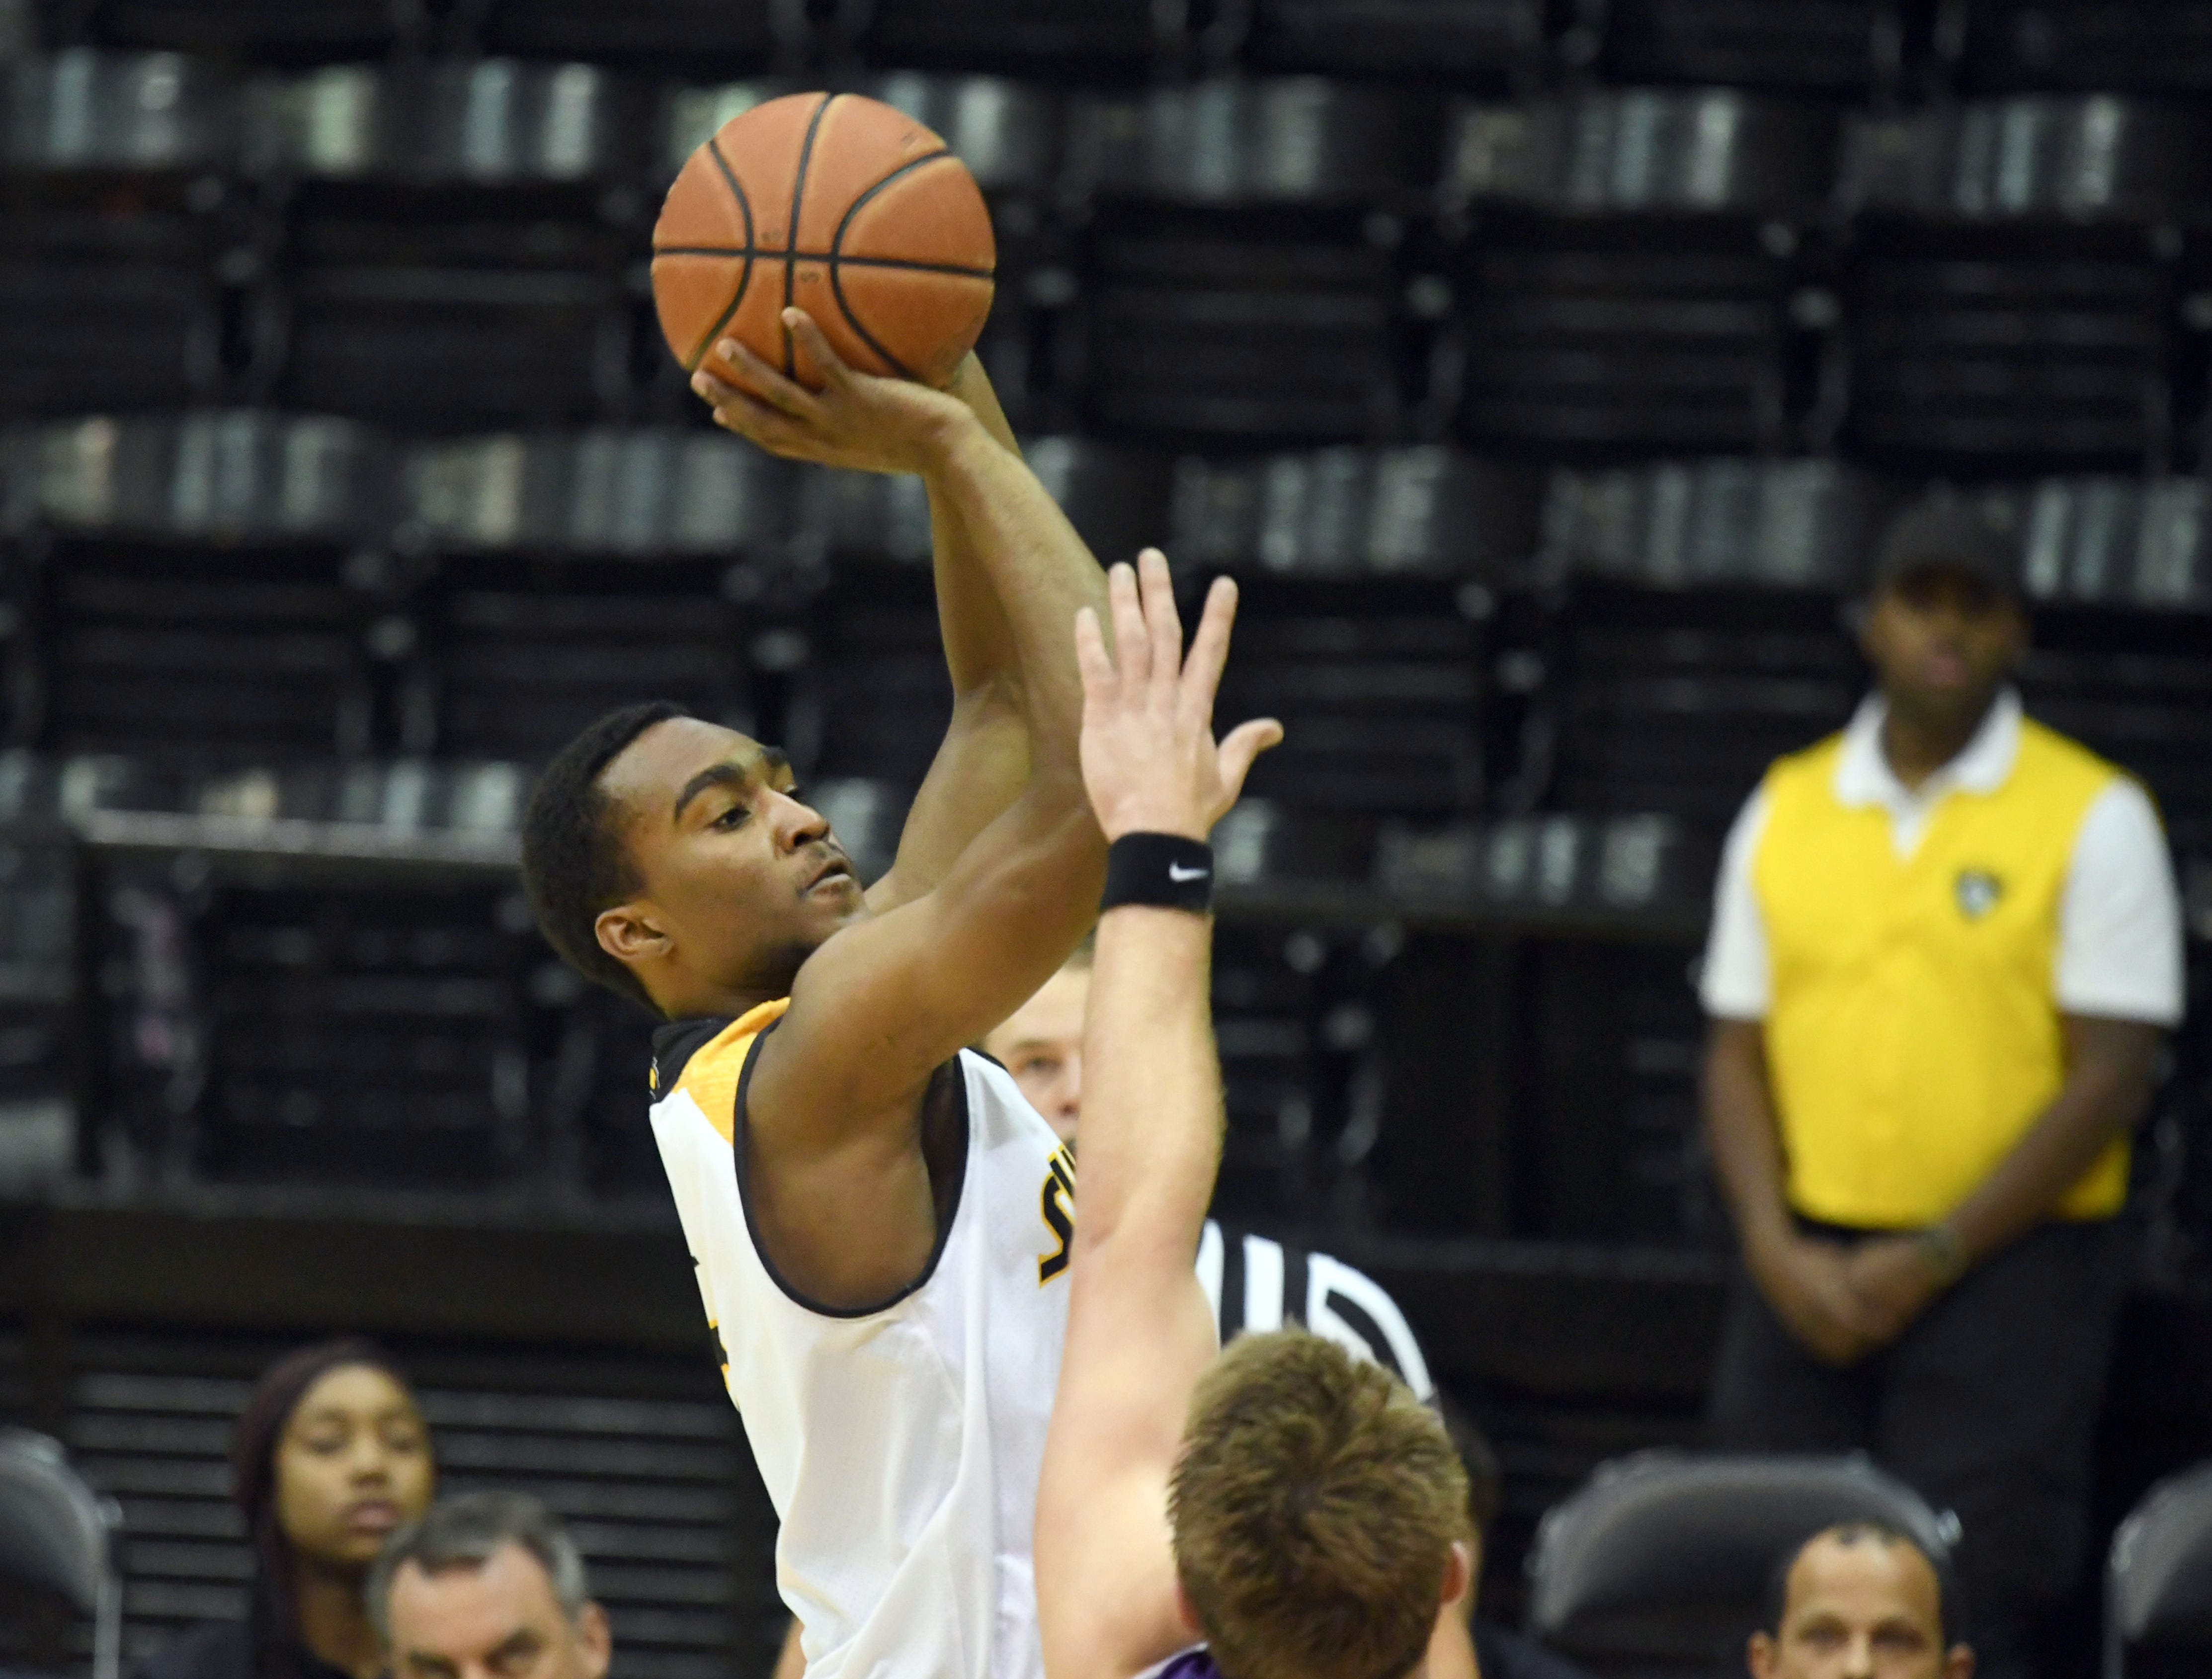 Southern Miss guard Shakur Daniel shoots for the basket in a game against Millsaps in Reed Green Coliseum on Tuesday, December 11, 2018.